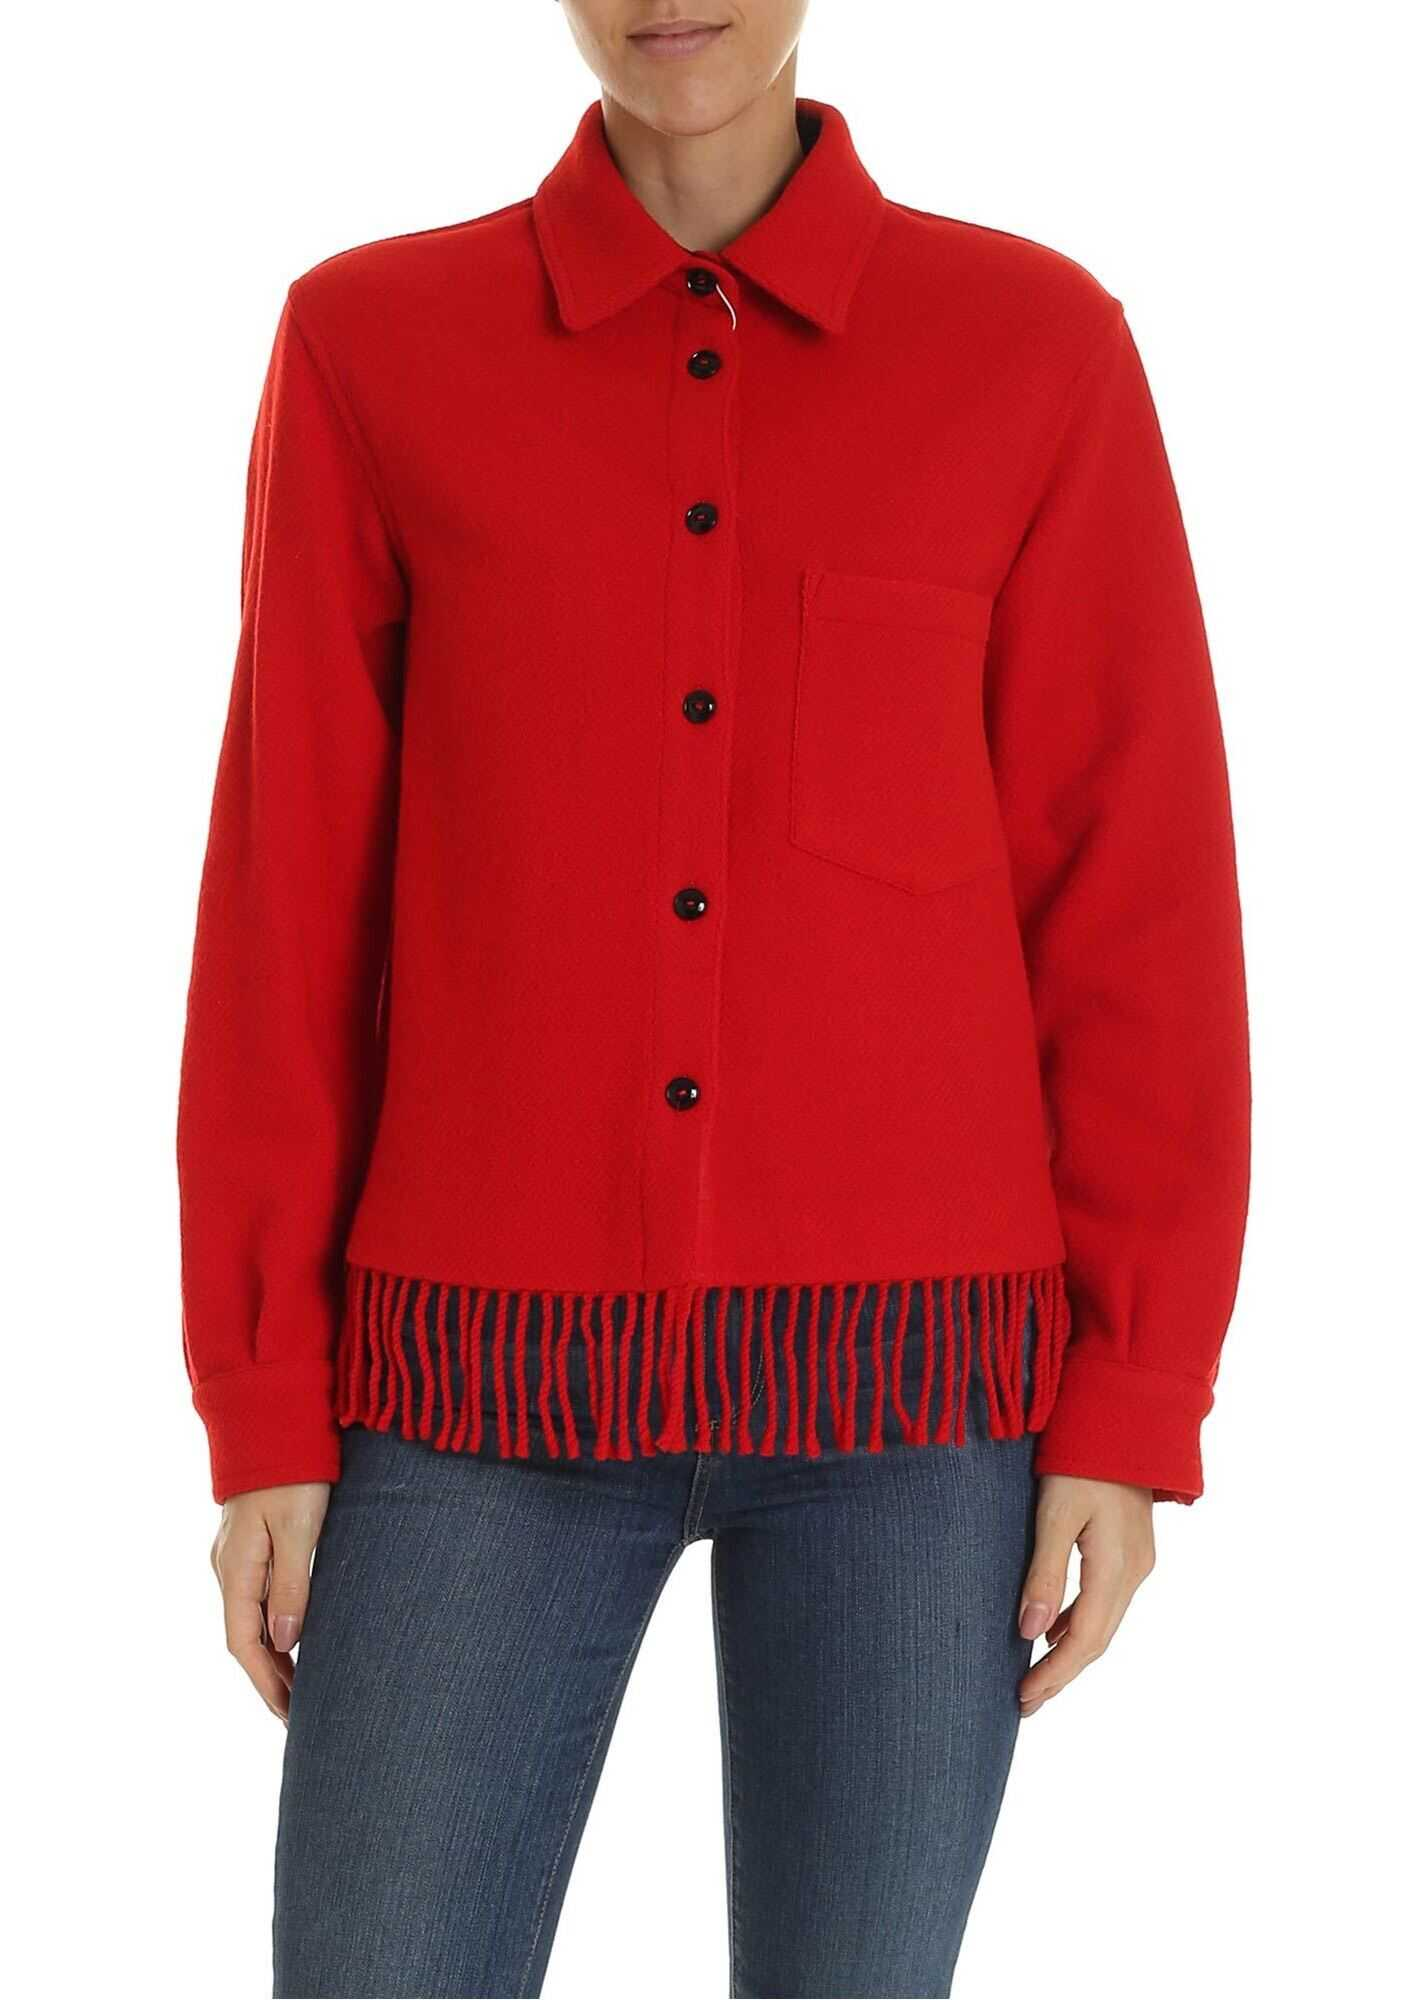 Blanket Shirt In Red thumbnail